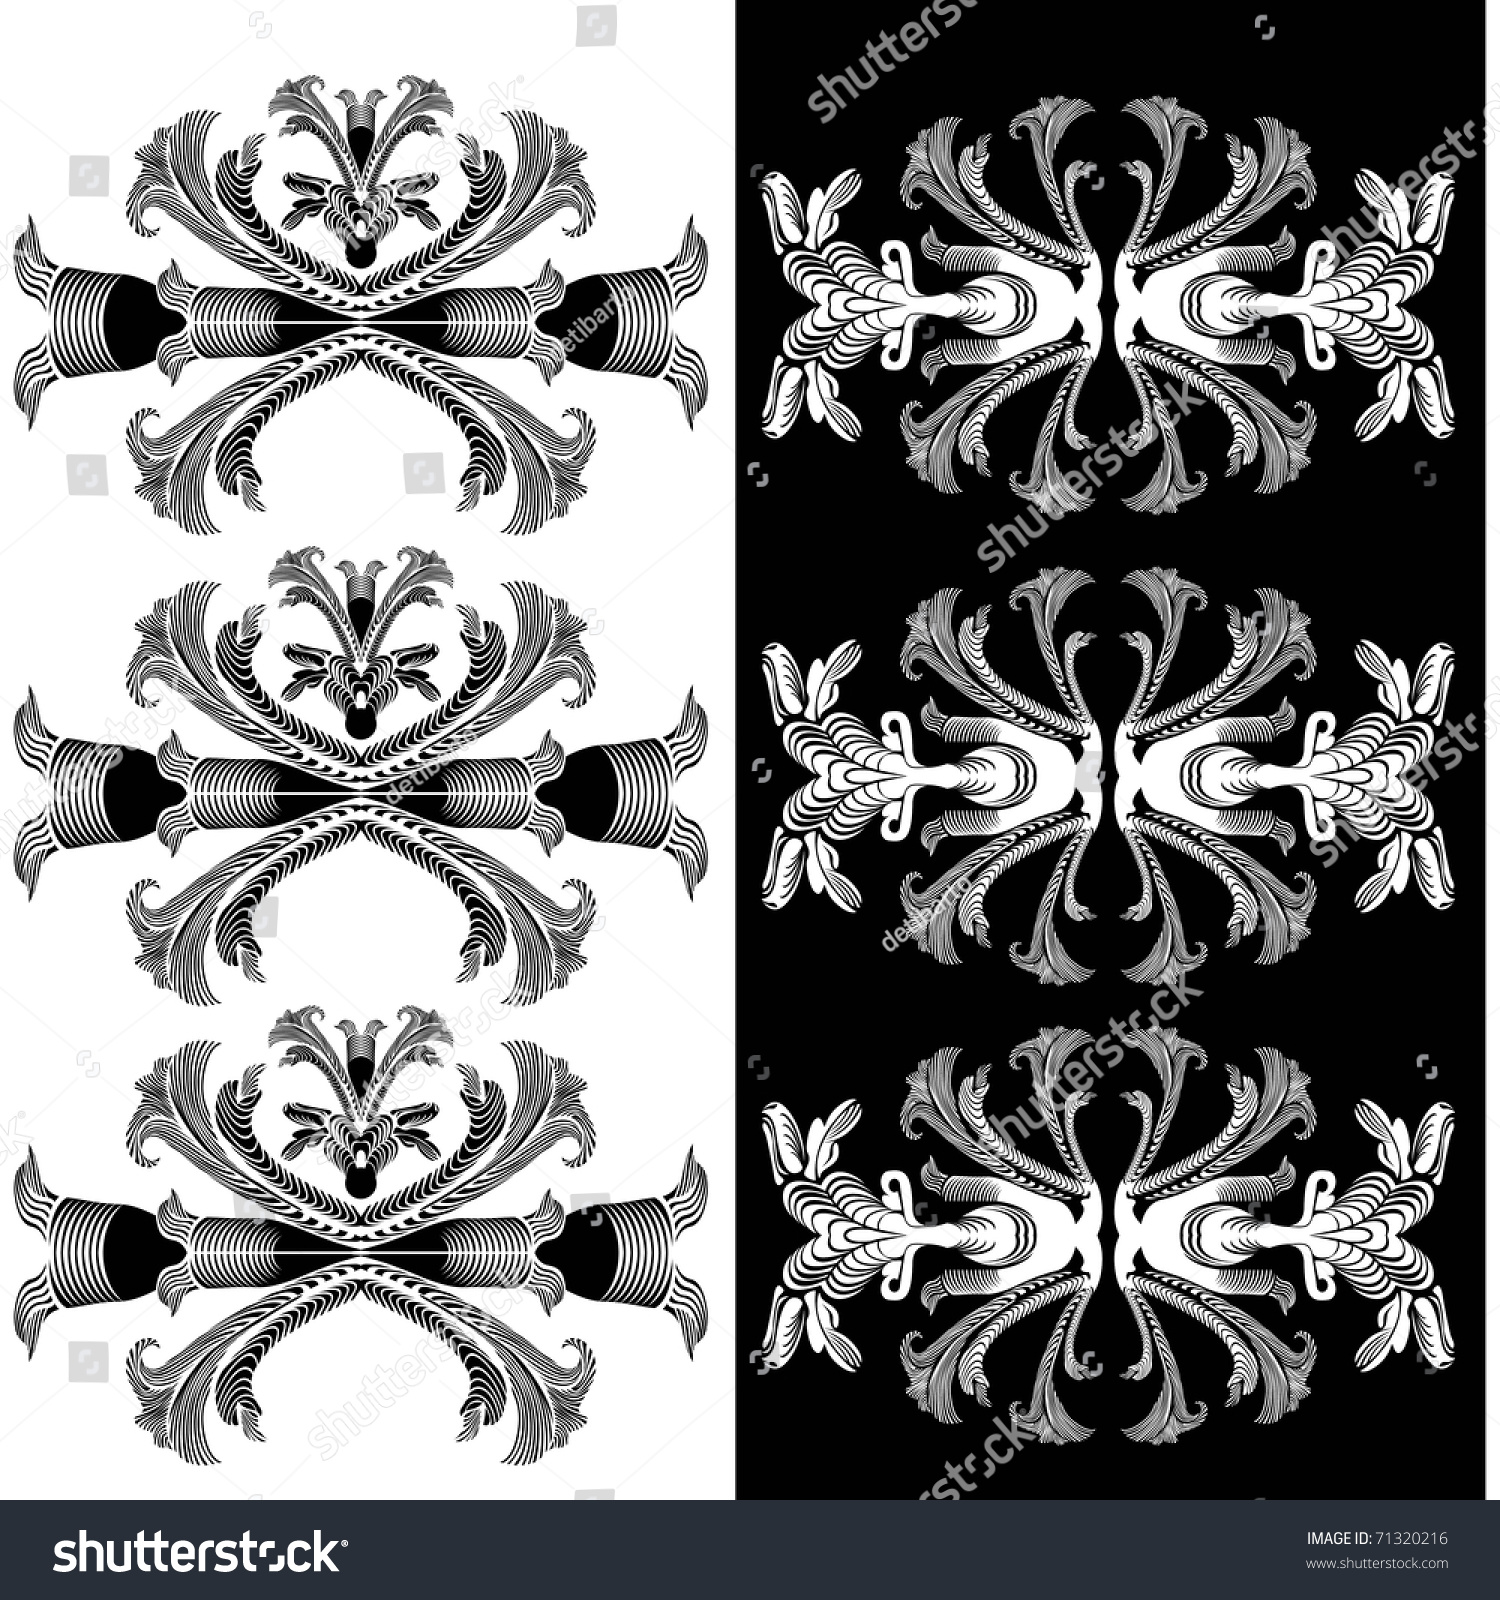 Vector Illustration Pattern Rococo Baroque Styles Stock